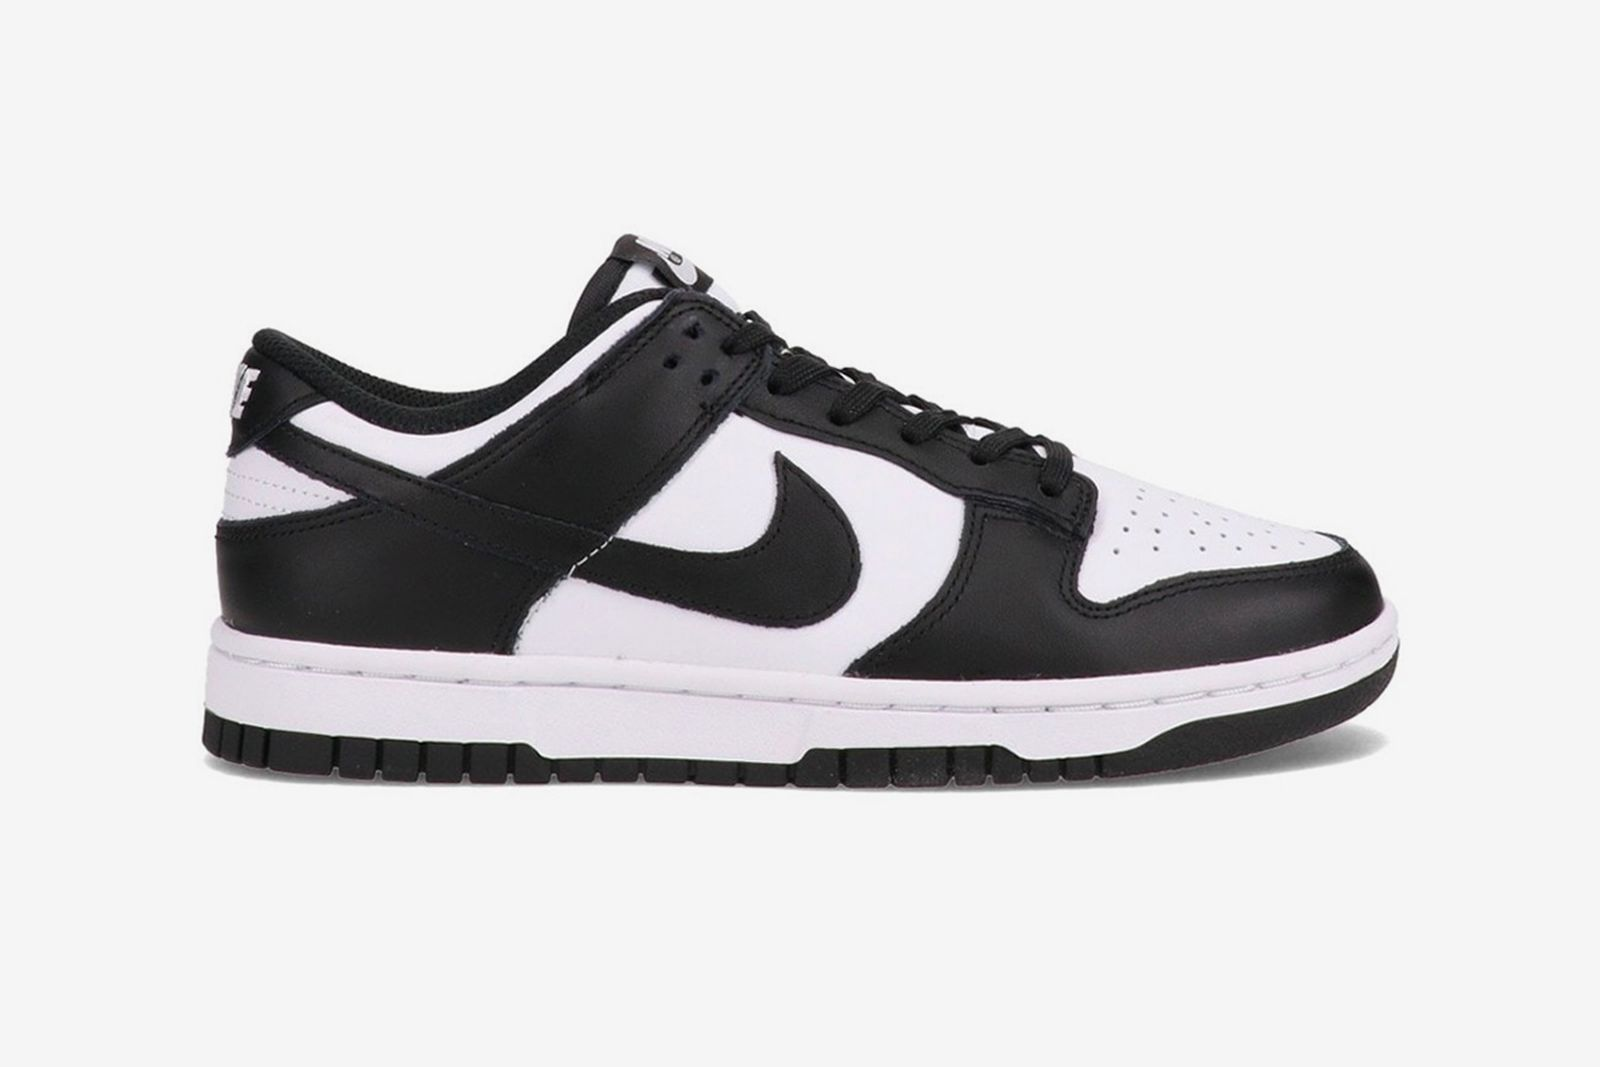 nike-dunks-january-2021-release-date-price-11